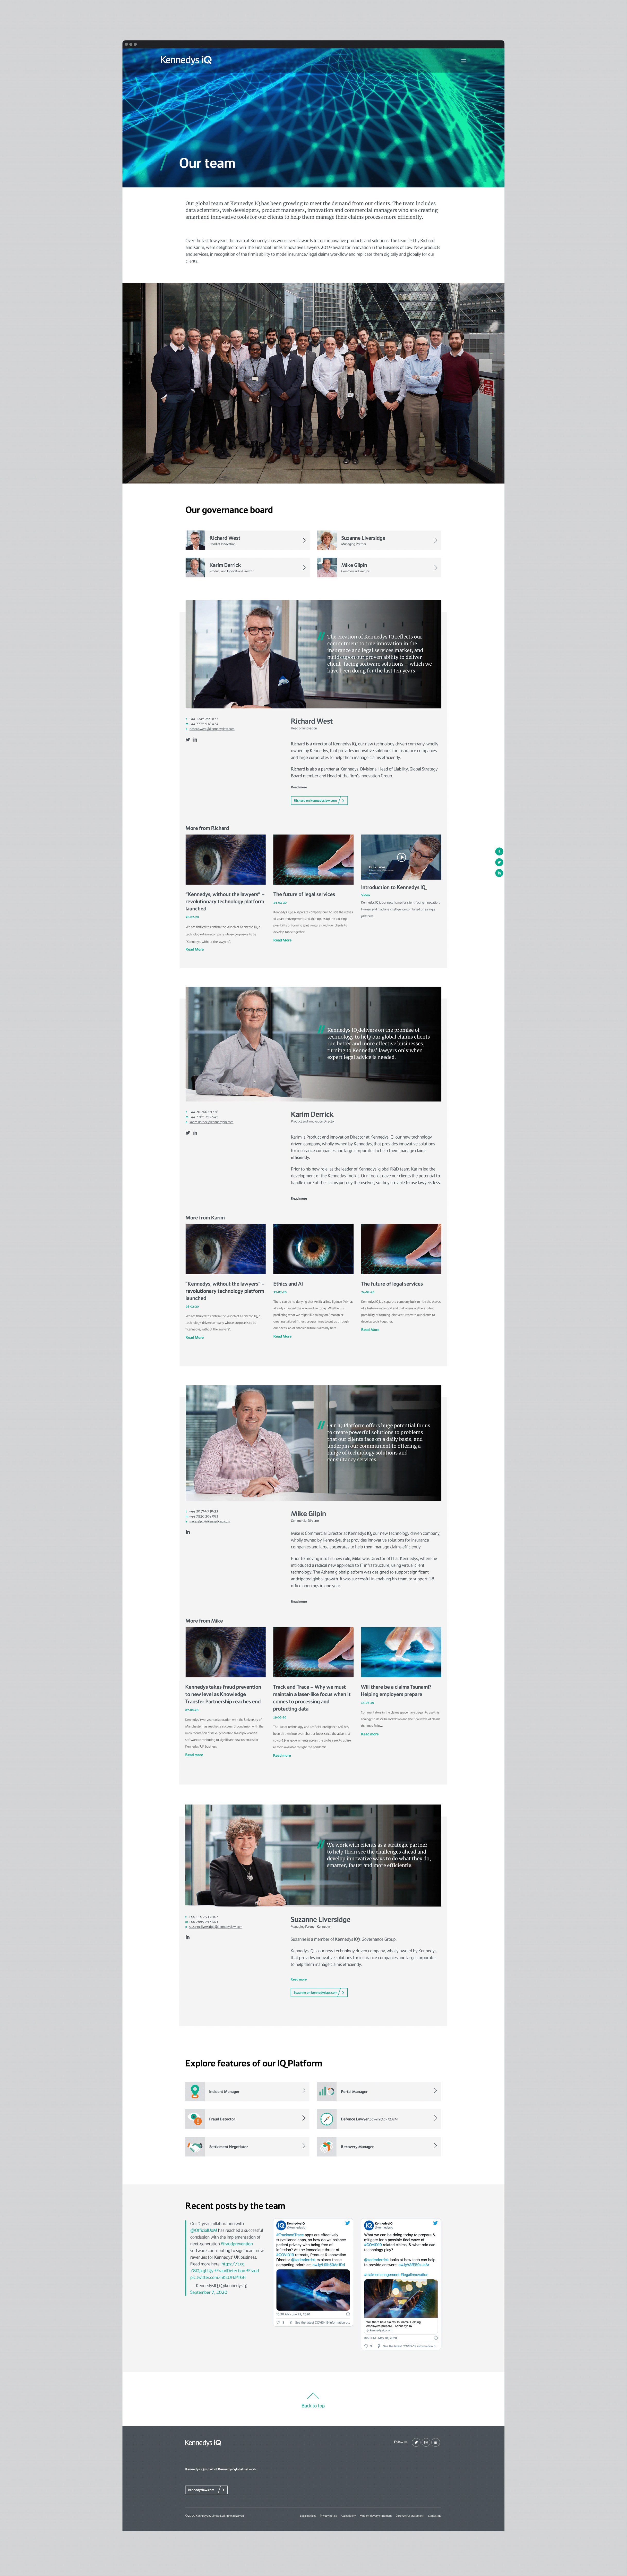 Kennedys IQ website design preview